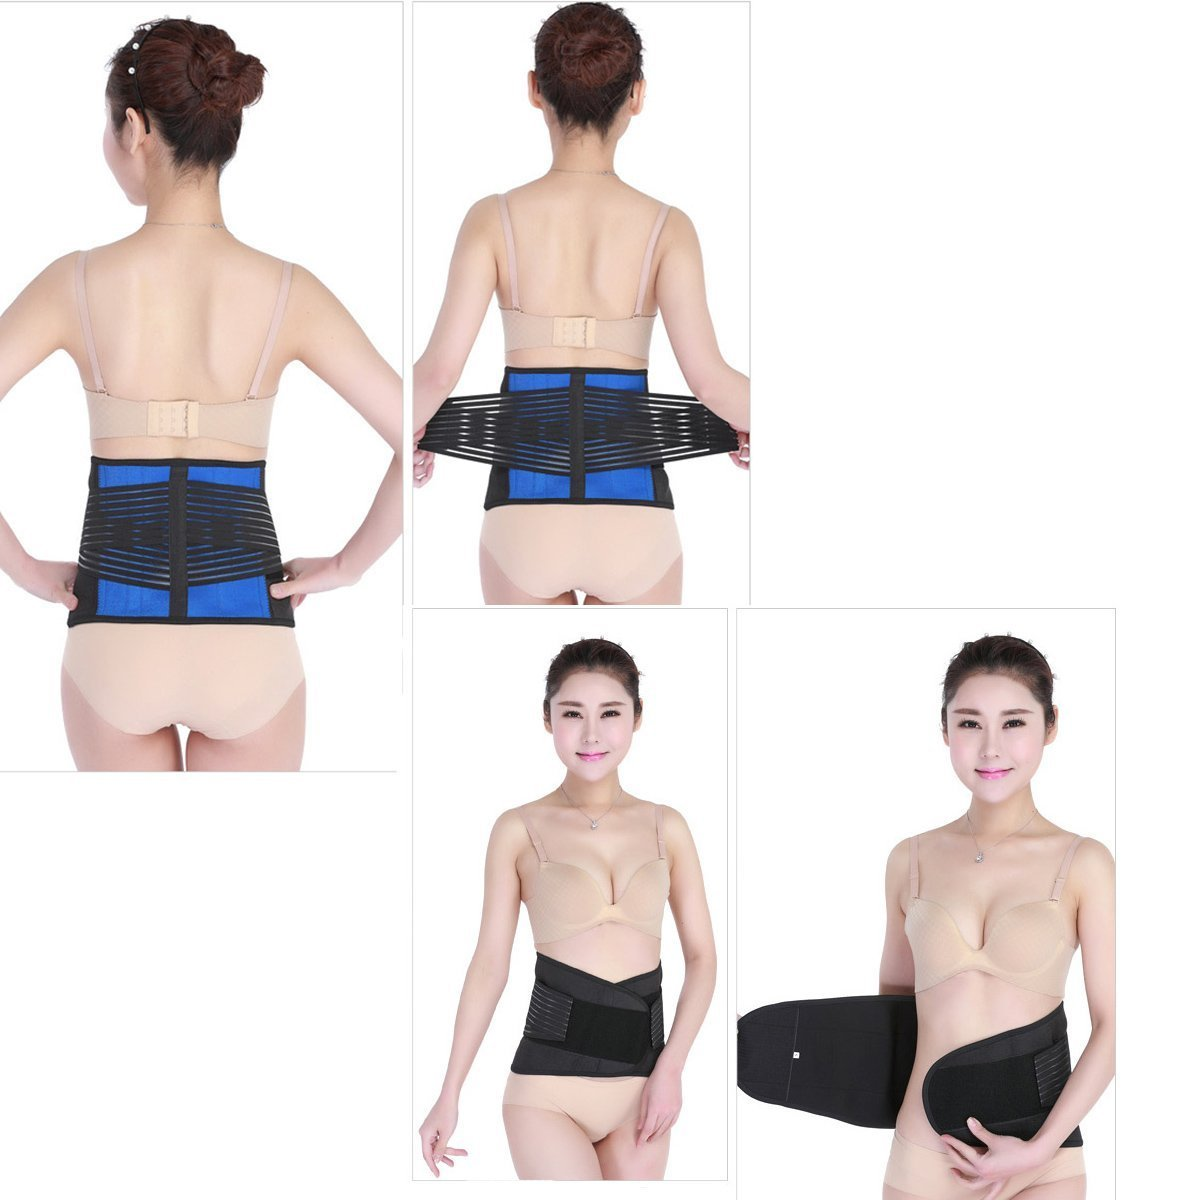 WONFAST Deluxe Neoprene Double Pull Lumbar Lower Back Support Brace Exercise Belt Waist Trainer Trimmer Belt with Dual Adjustable Straps Abdominal Binder Belly (5X-Large/54-58'') by WONFAST (Image #6)